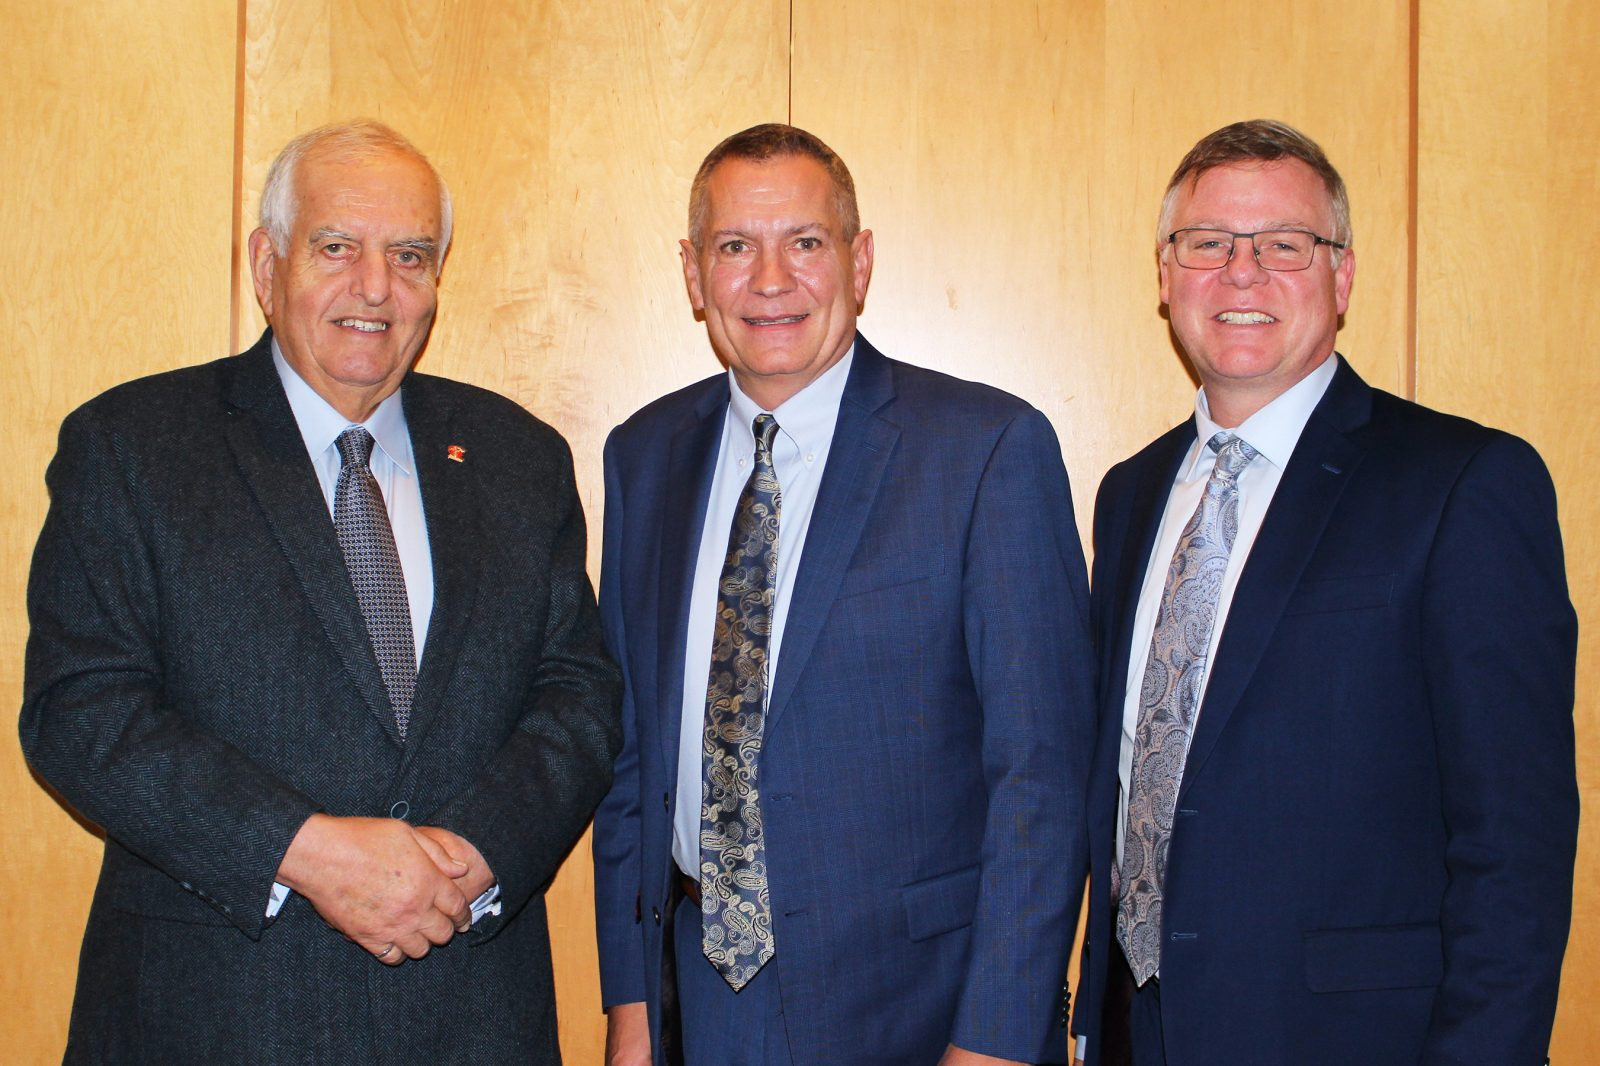 Lalonde, Eamer, re-acclaimed to Catholice School Board